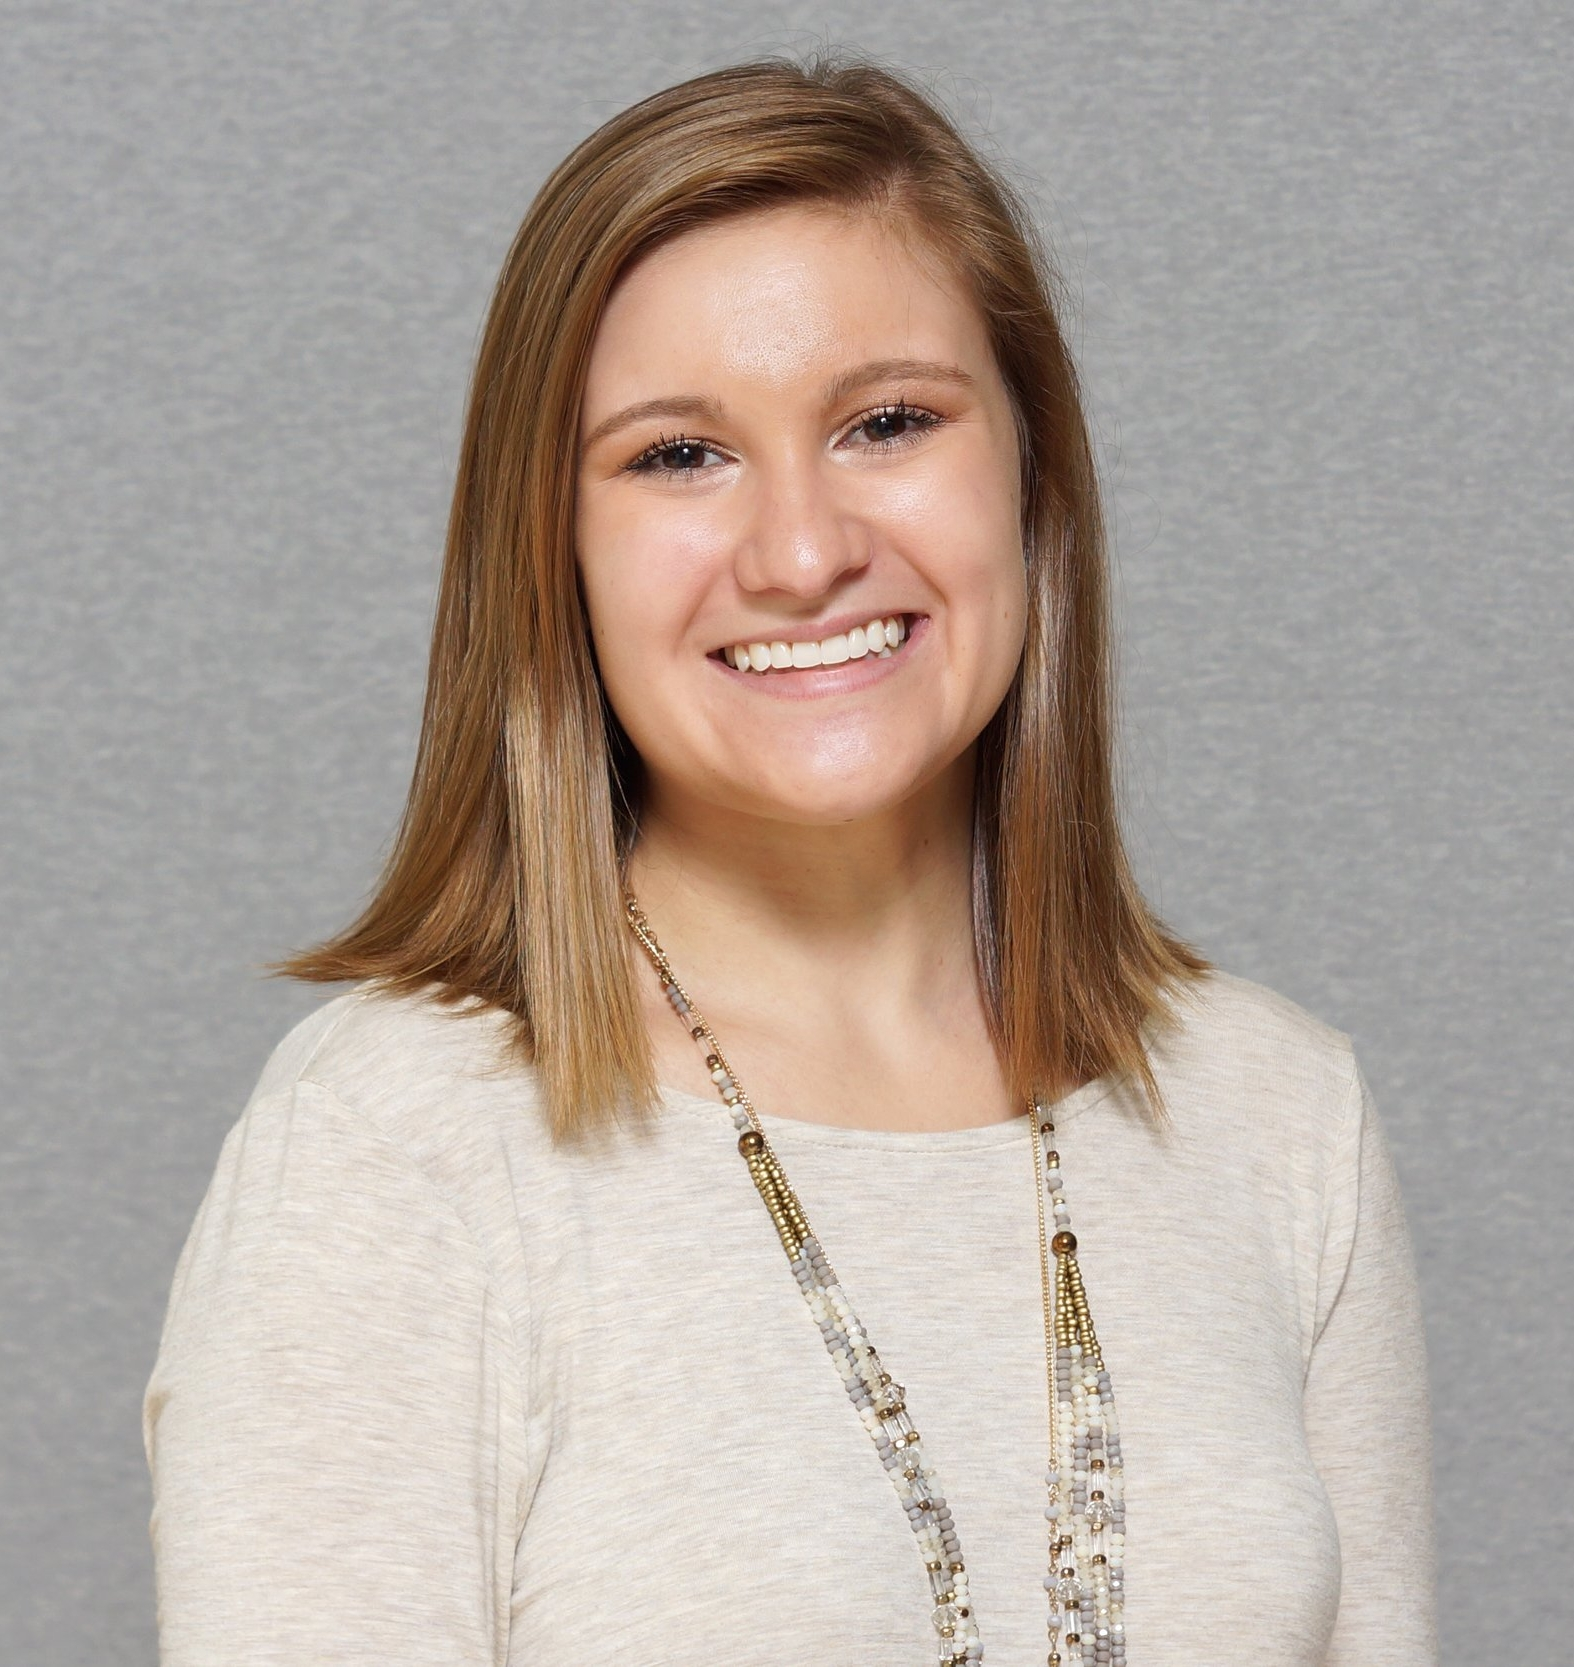 Hunter Stinnett - Intern CoordinatorCurrently, Hunter attends Longwood University. Go Lancers! She started interning with Tharpe Social Media & Events this fall. Hunter has a strong desire to learn and gain experience in the wedding industry. We're so happy to have her on the team!